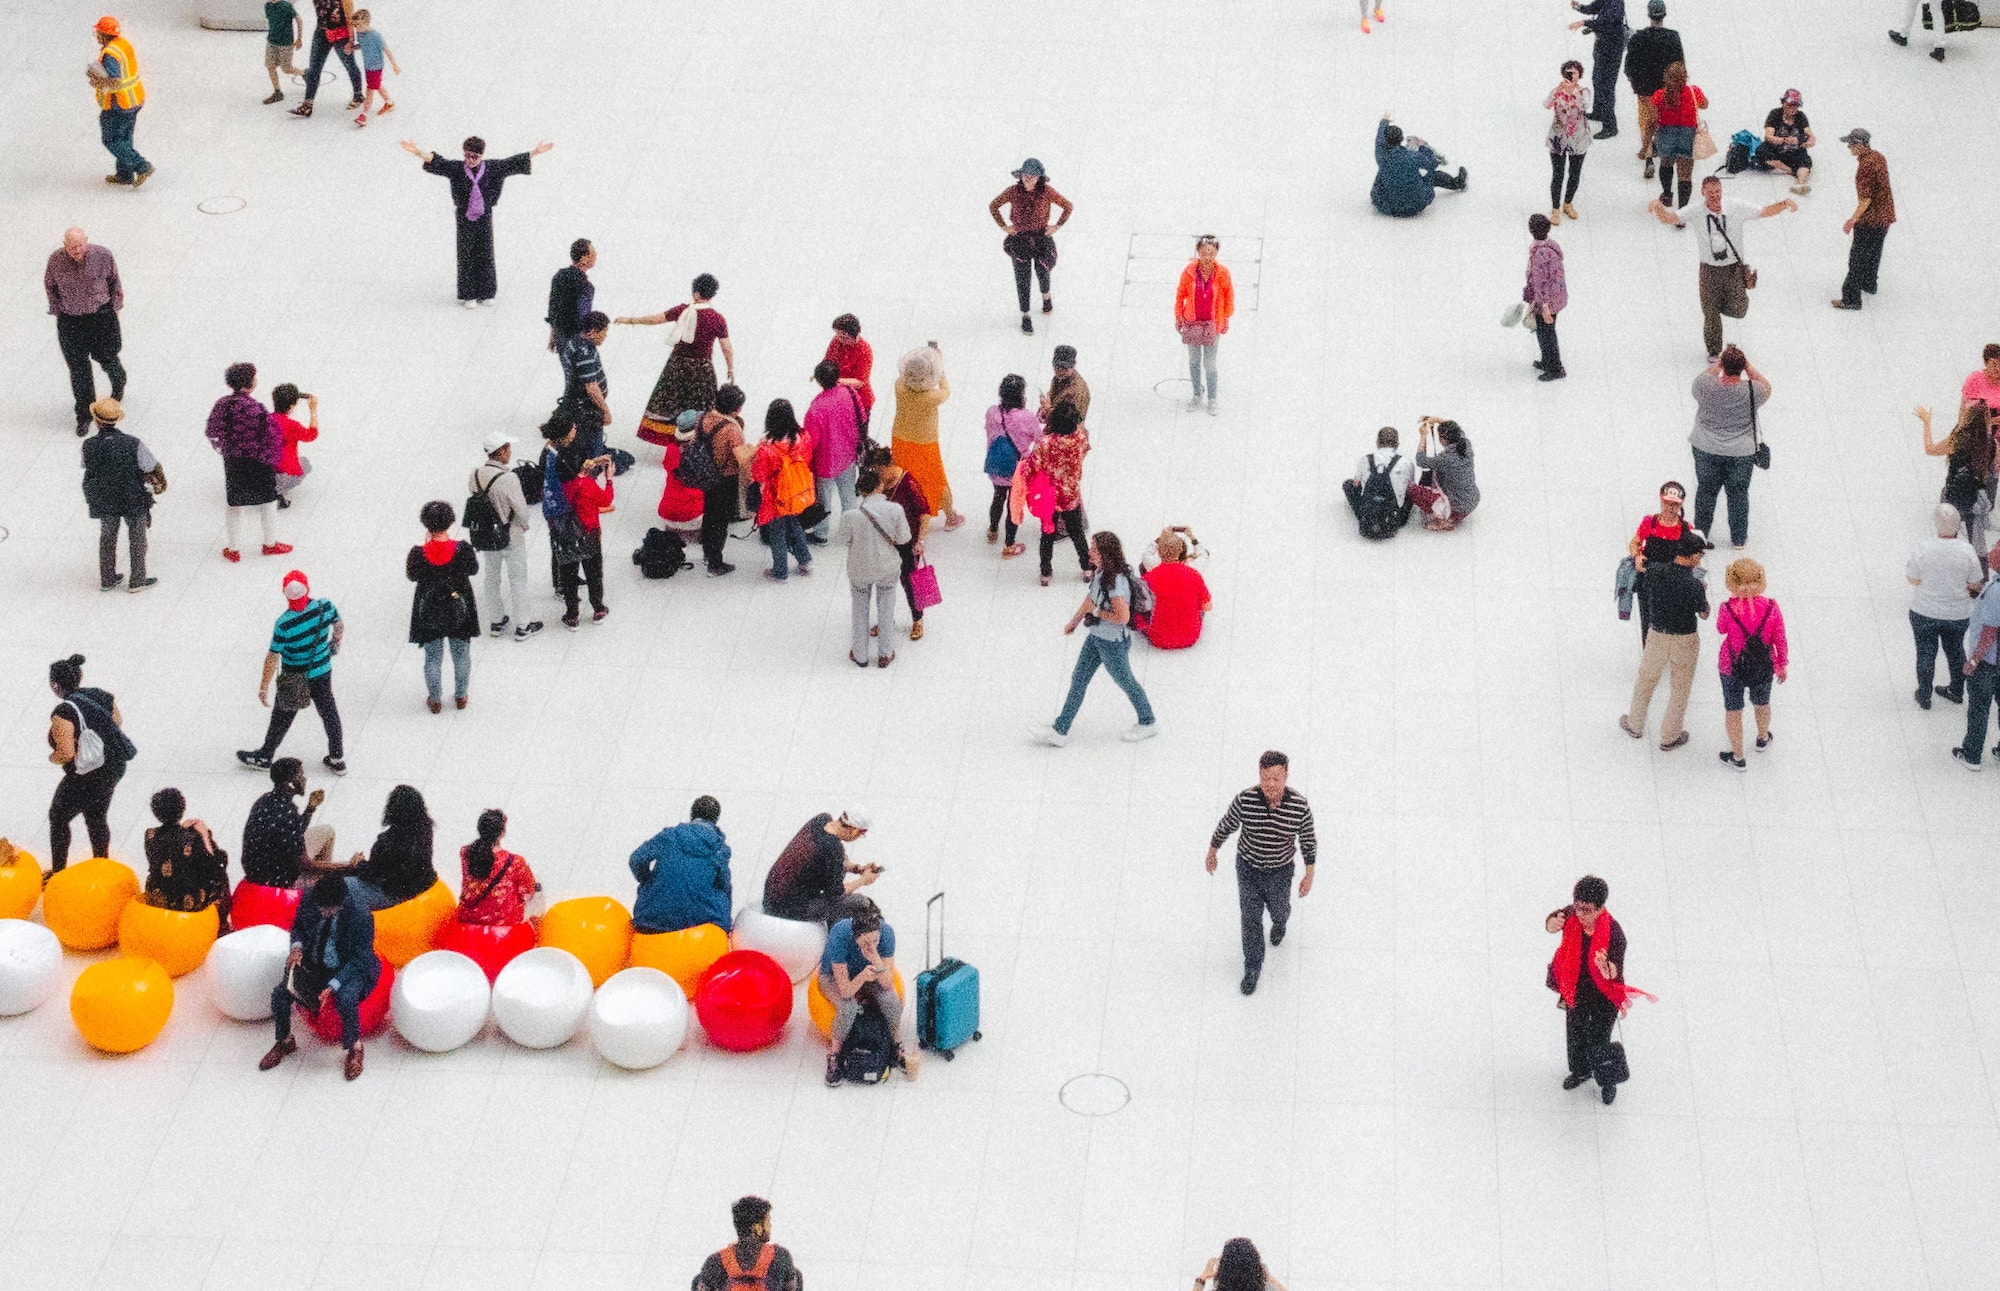 Many people walking across a white-floored public space, seen from above